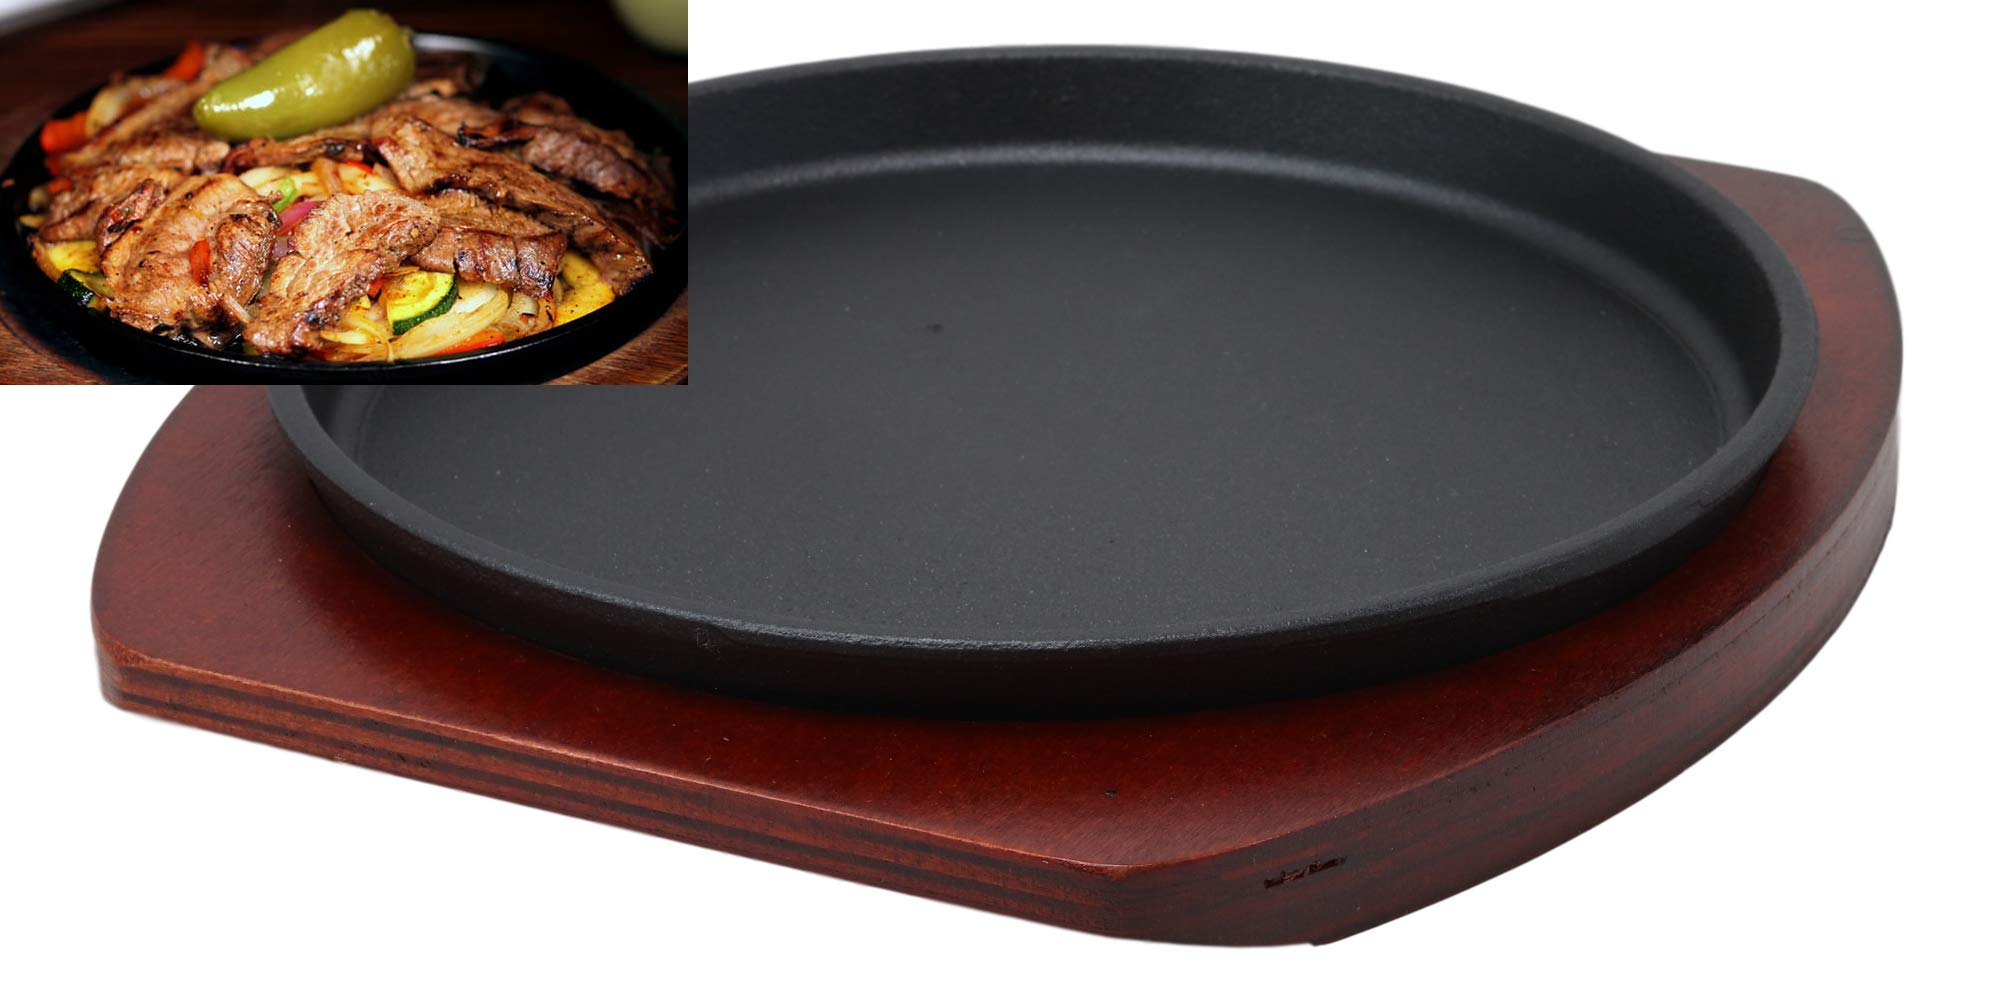 Ebros Personal Size Cast Iron Sizzling Fajita Pan Skillet Japanese Steak Plate With Wood Underliner Base Restaurant Home Kitchen Cooking Supply (Round 8.75''Diameter) by Ebros Gift